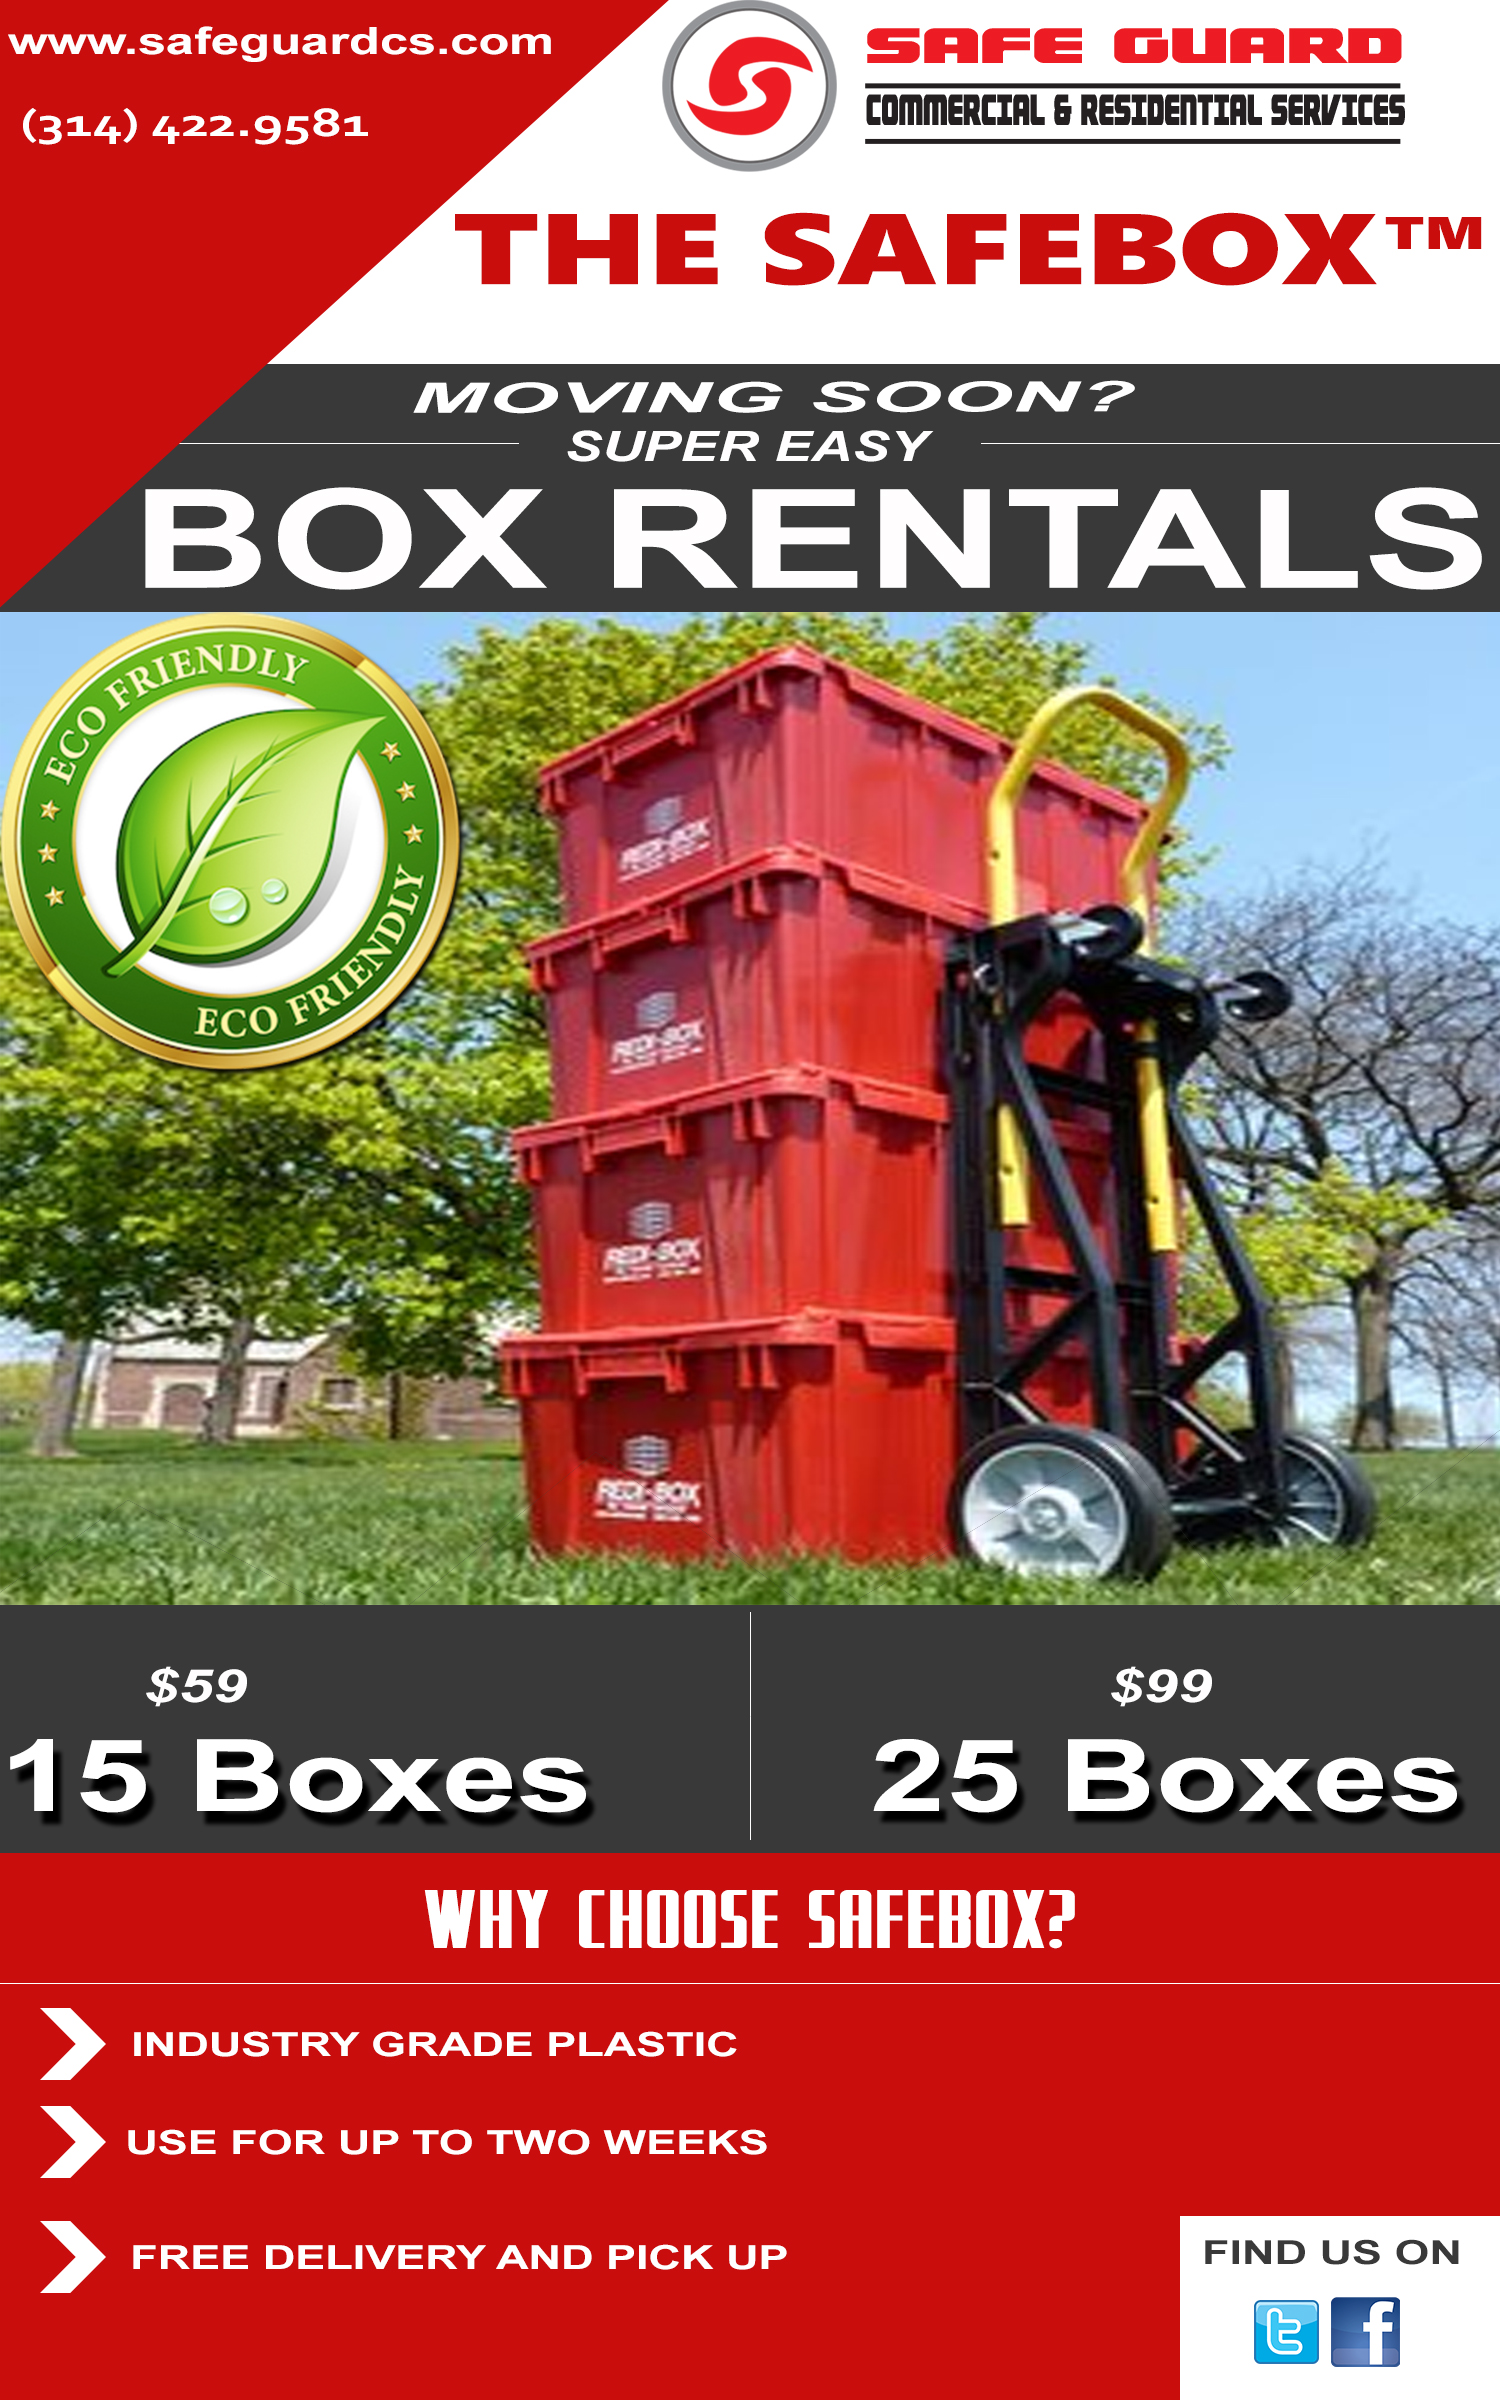 """RENT A  """"SAFE-BOX"""" today from Safe Guard Commercial Services for your Commercial and Residential Moving NEEDS."""